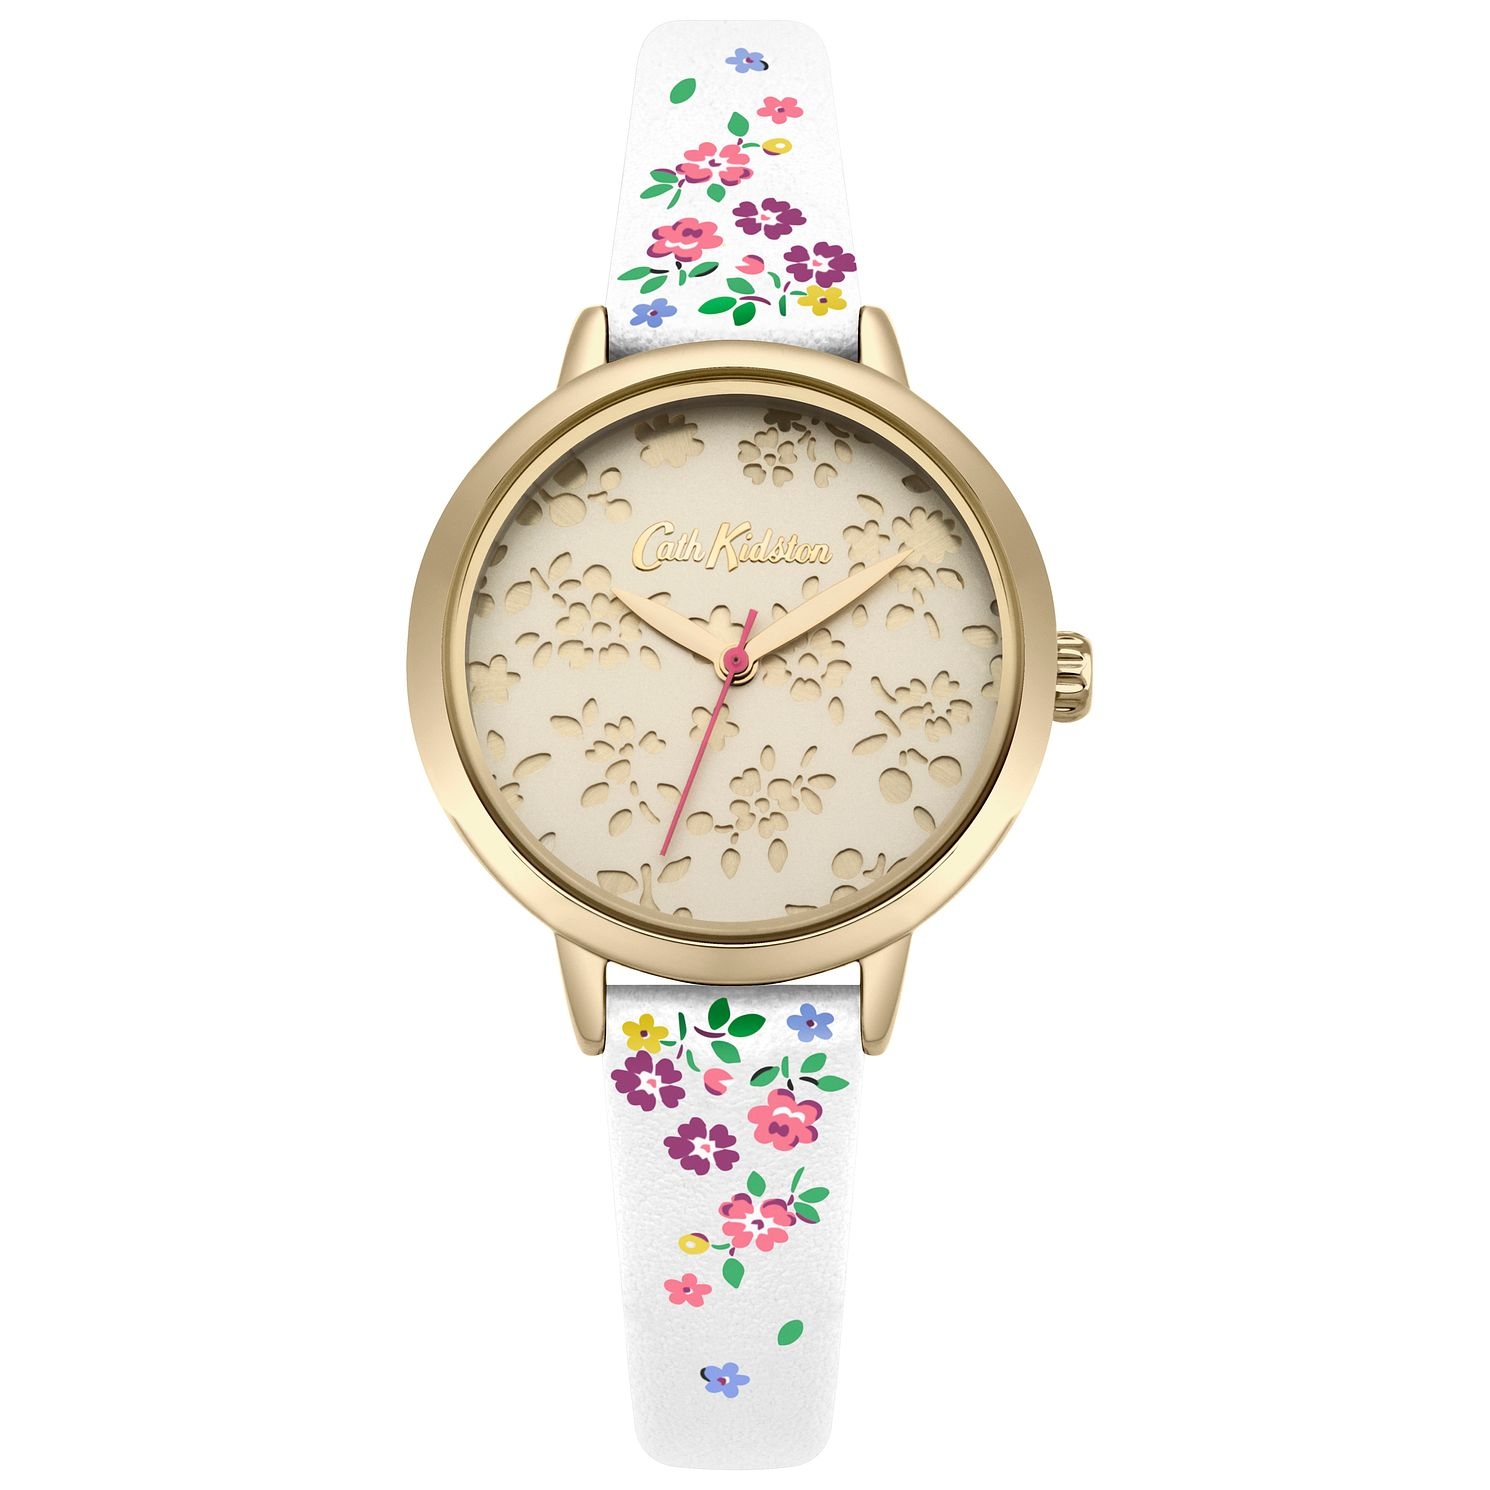 Cath Kidston Ladies' Cream Strap Watch - Product number 4166396